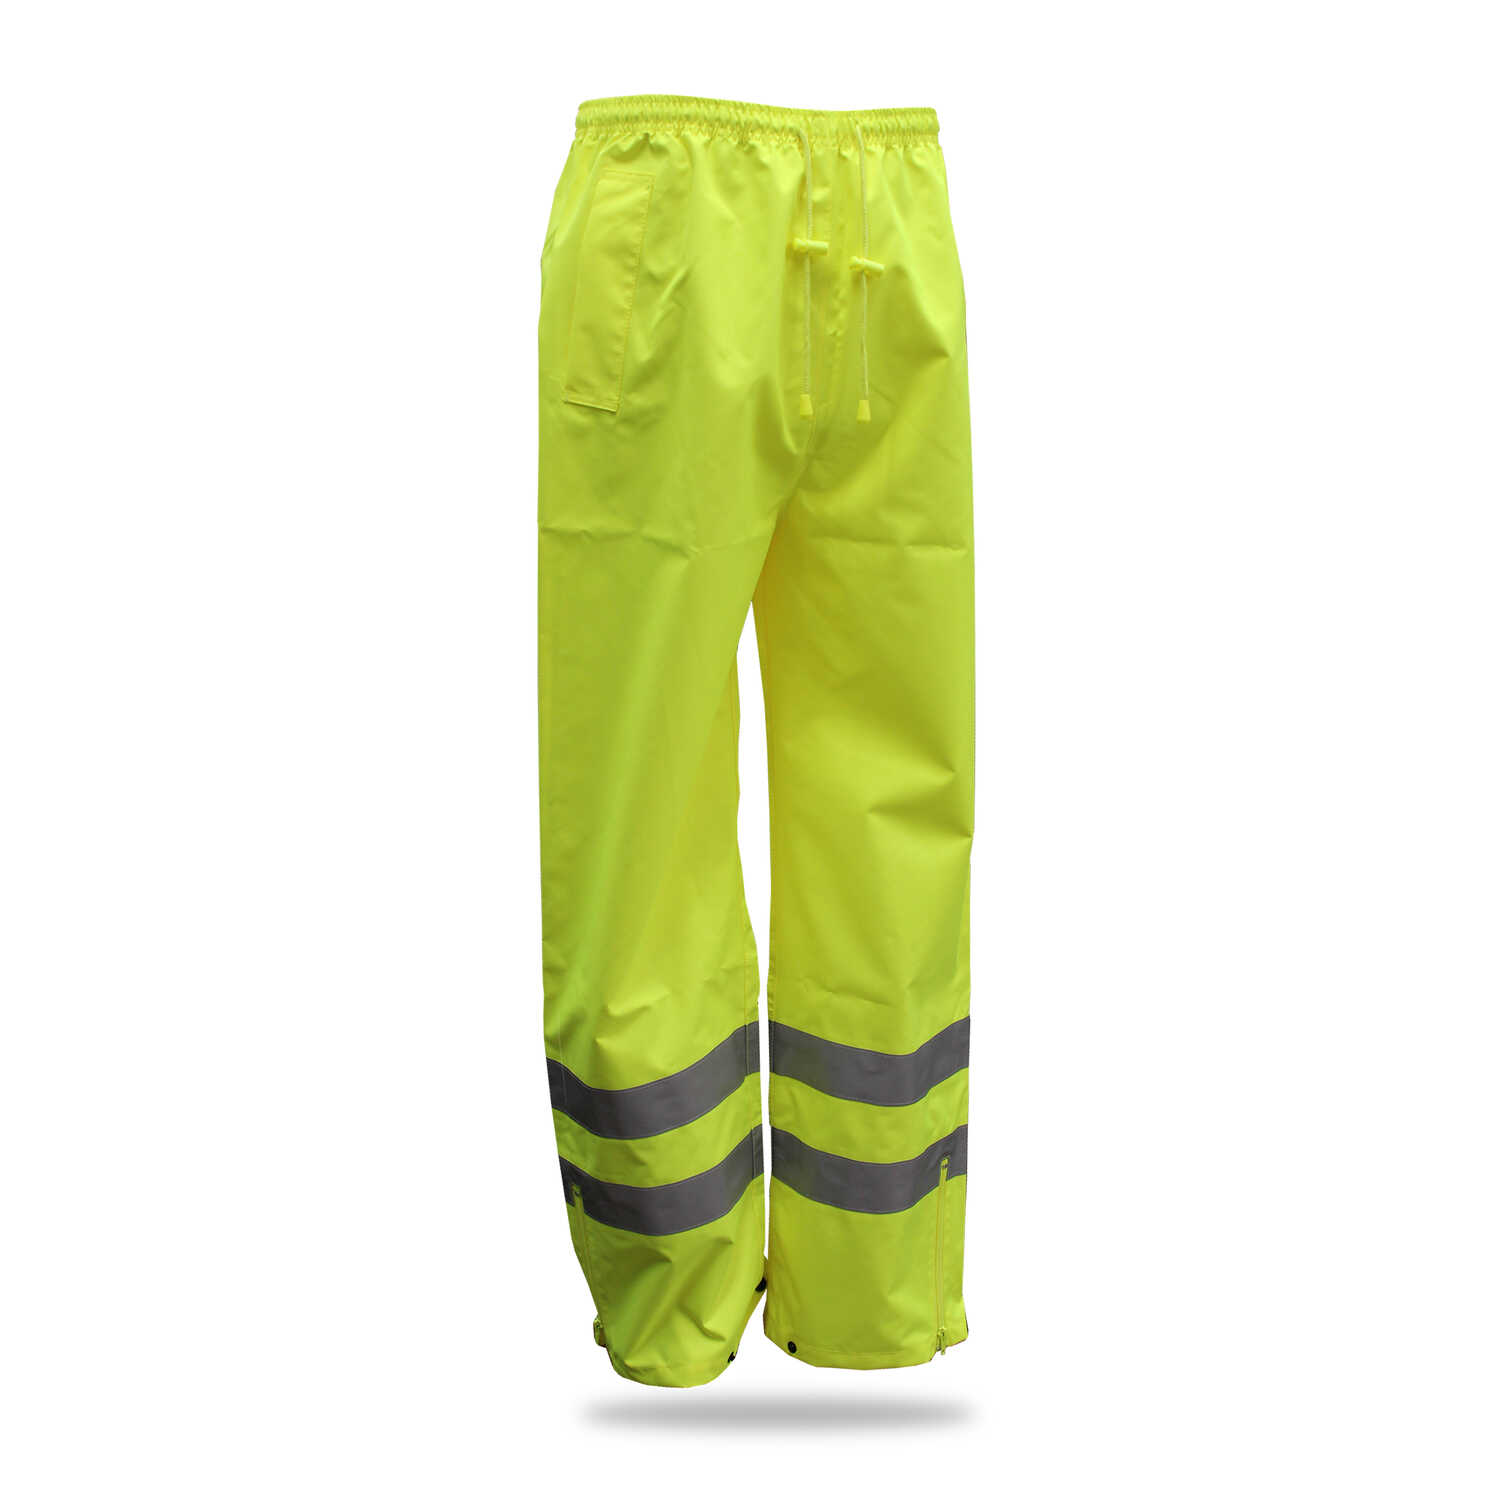 Boss  Hi-Vis  Polyester  Rain Poncho  XL  Yellow